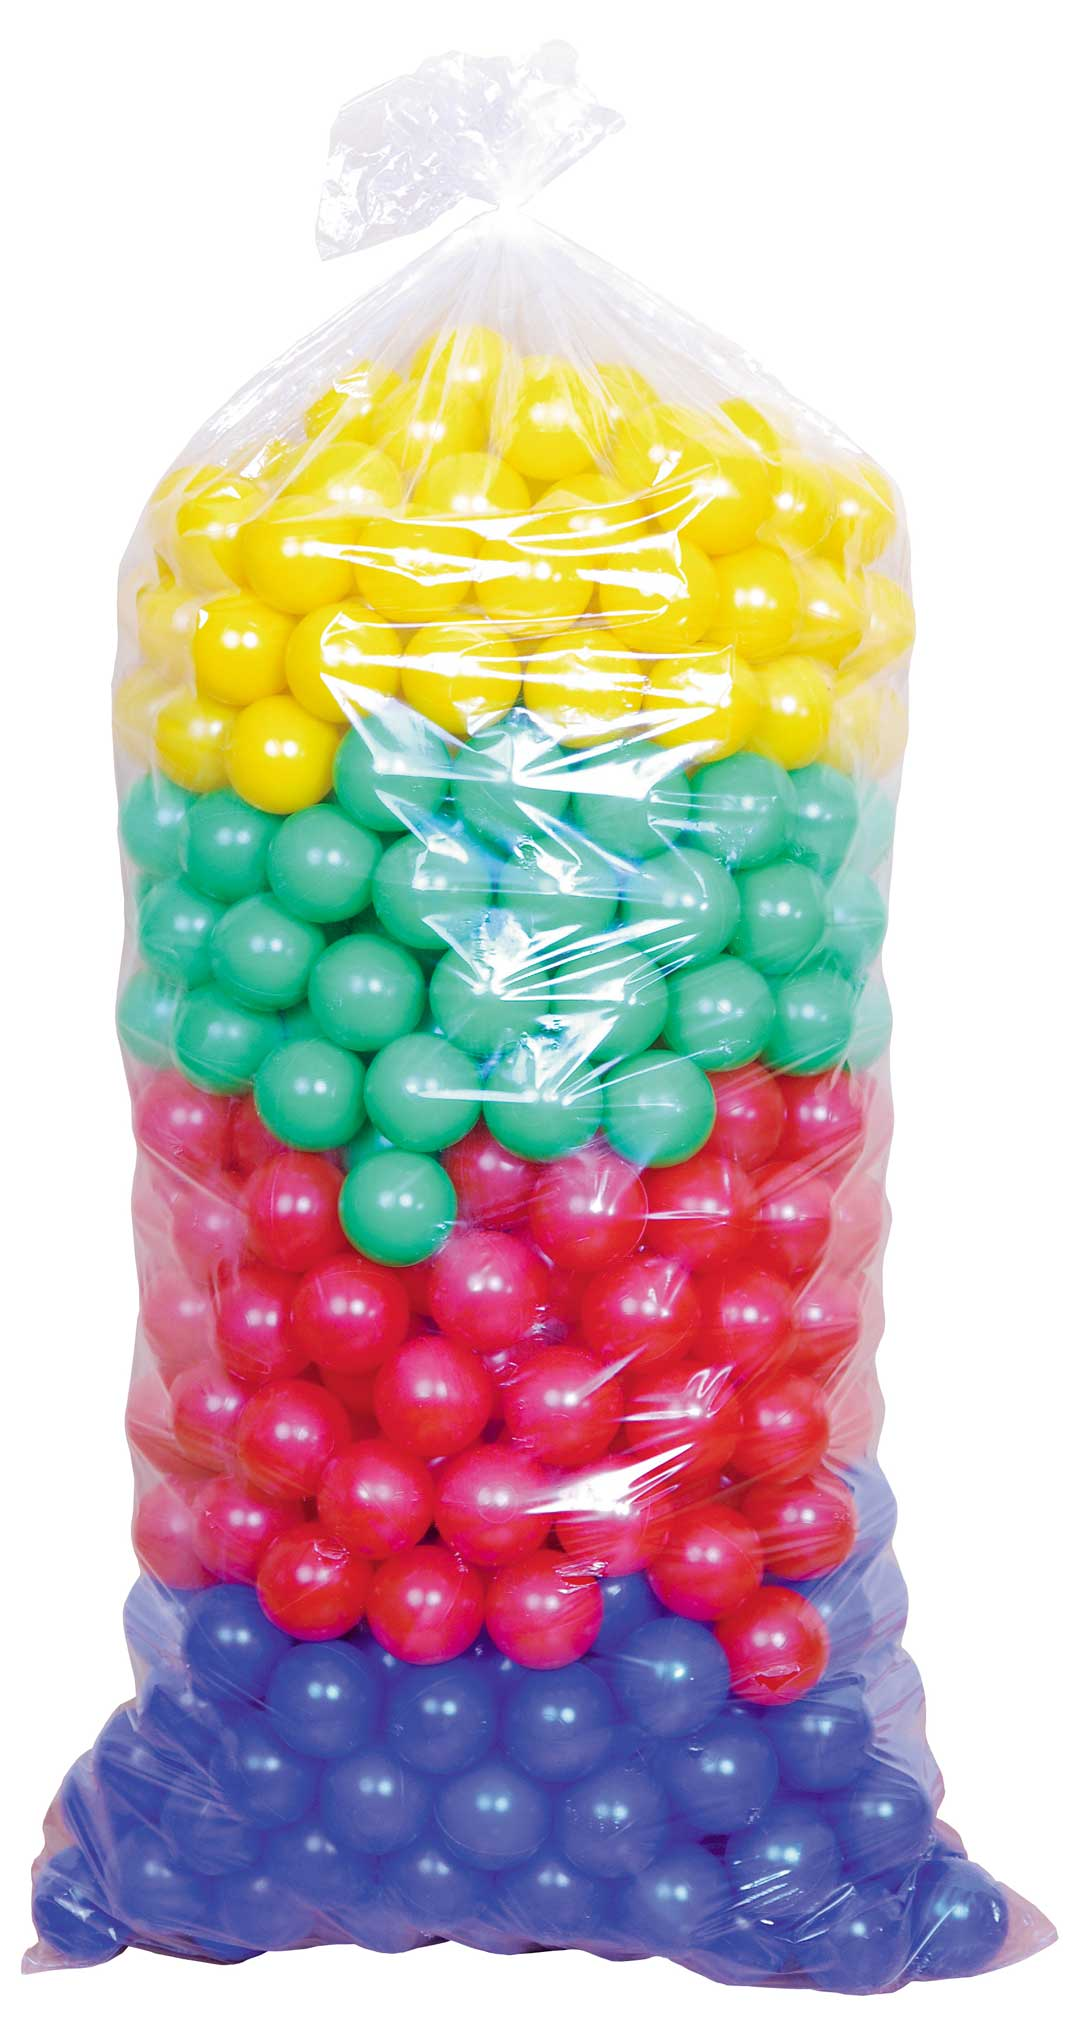 Ball Pool Balls Plastic Colour Mix